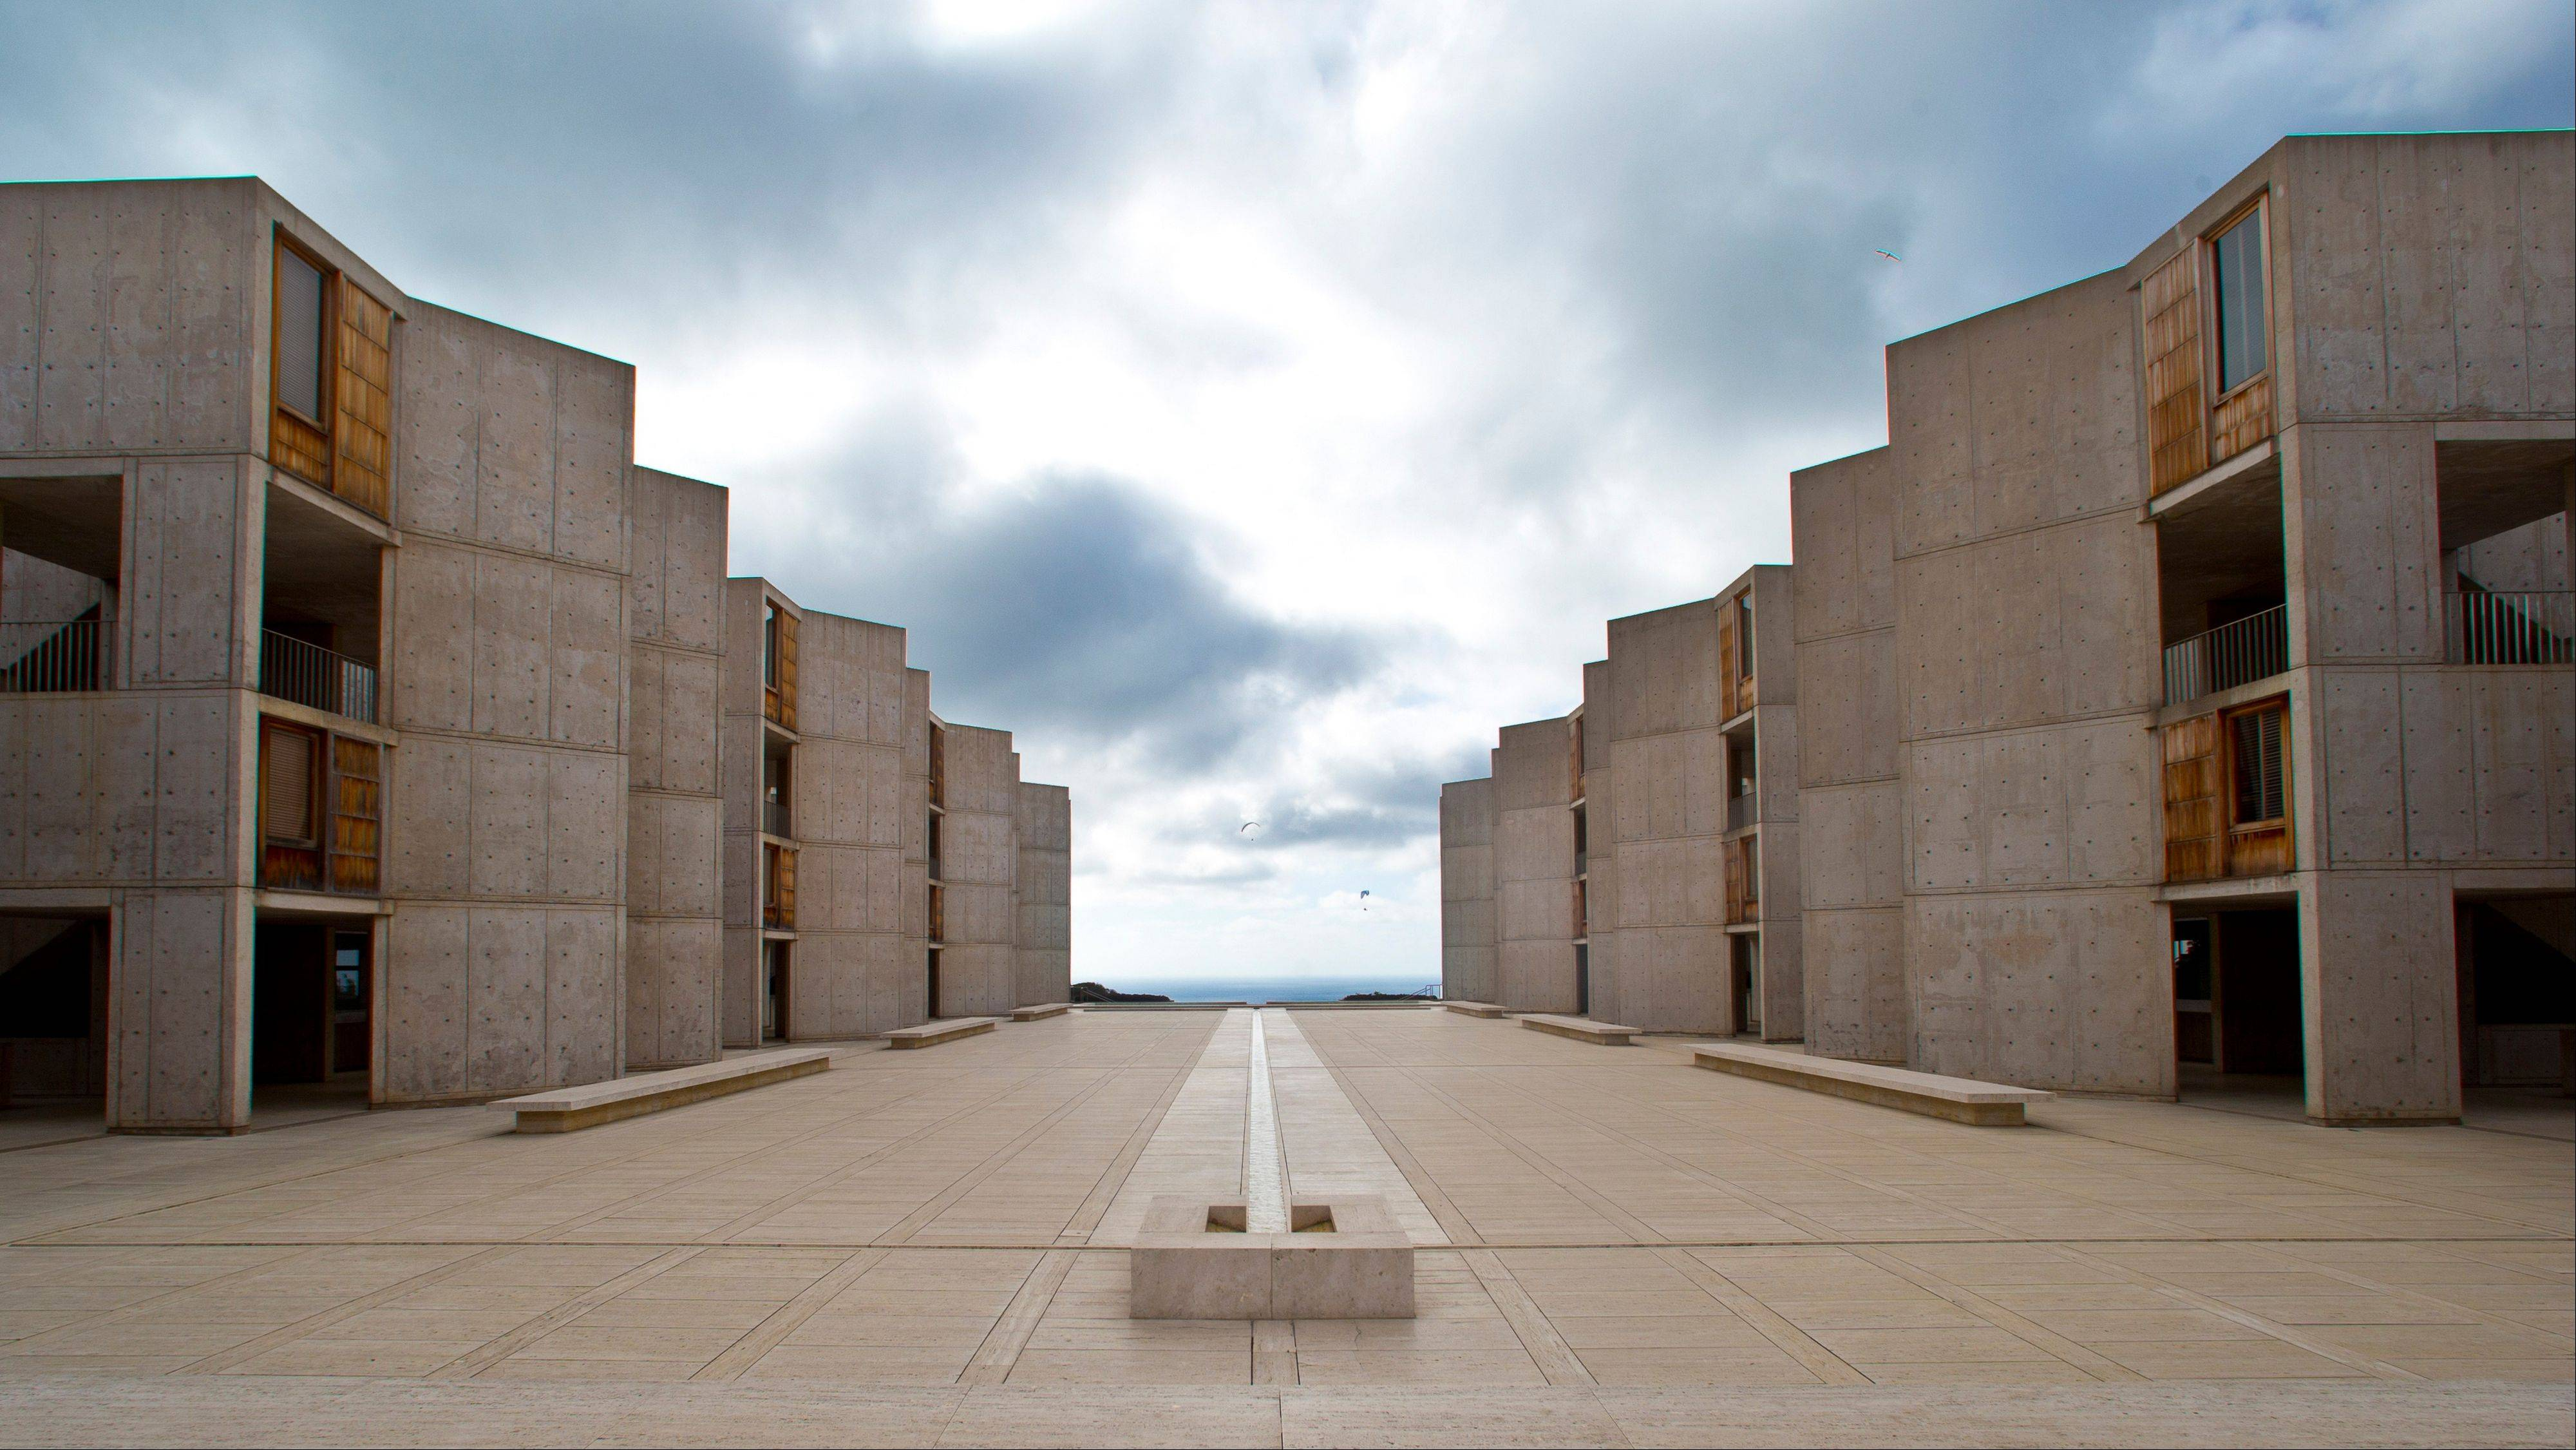 The Salk Institute, designed by world-renowned architect Louis I. Kahn, sits above the Pacific Ocean and adjacent to the glider port and the University of California, San Diego.